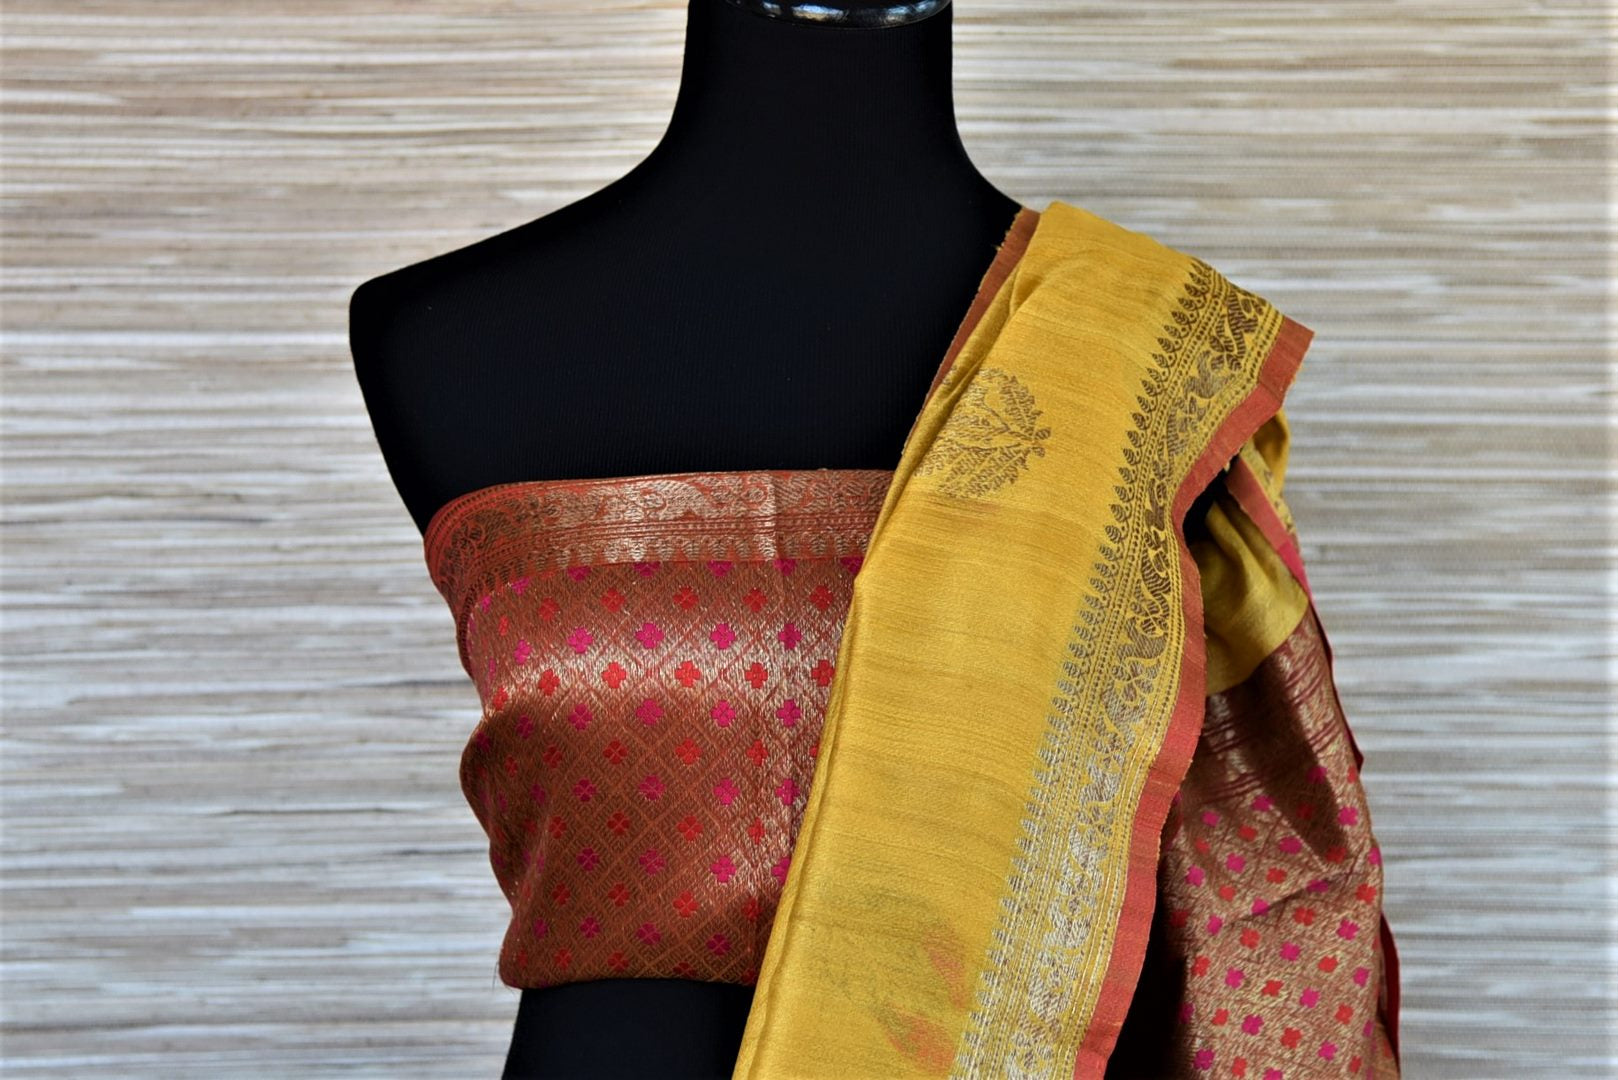 Shop beautiful yellow tassar Benarasi saree online in USA with antique zari floral border. Wear designer sarees, Banarasi sarees, handwoven tussar sarees on special occasions from Pure Elegance Indian clothing store in USA. -blouse pallu